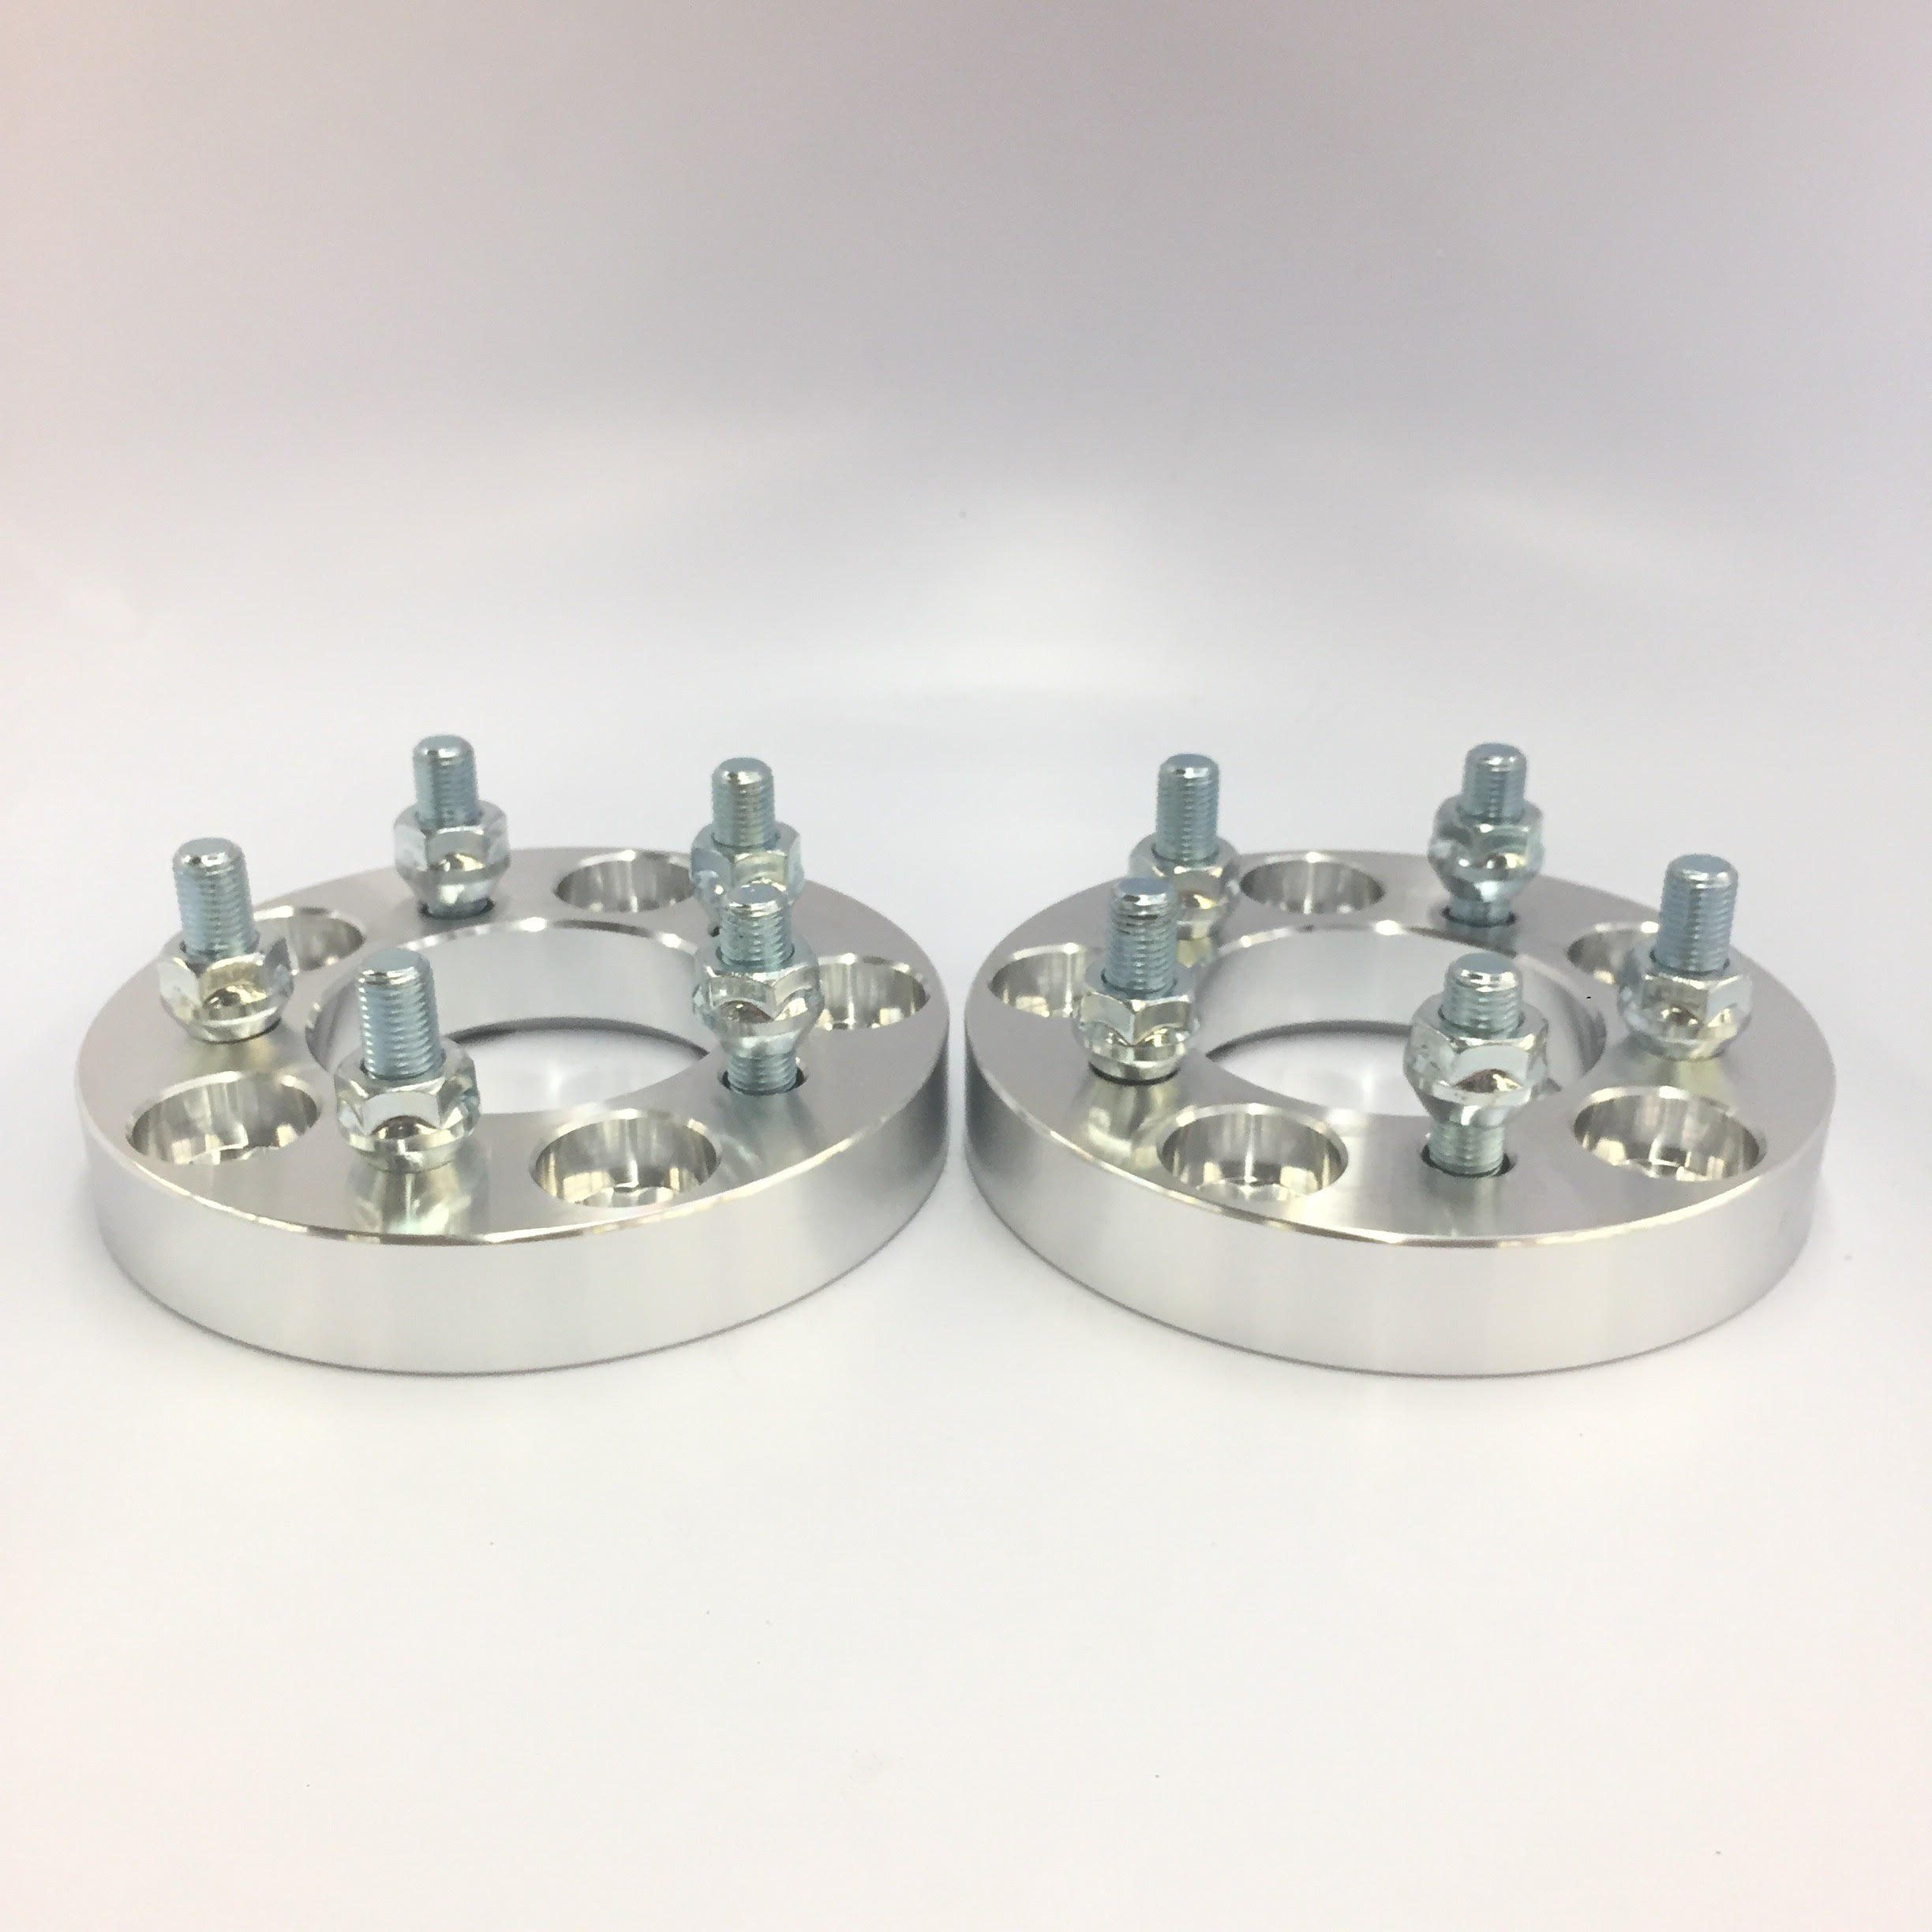 4 25mm 5x4.5 Wheel Spacers 1 Inch 5x114.3 Adapters 12x1.5 Studs Billet